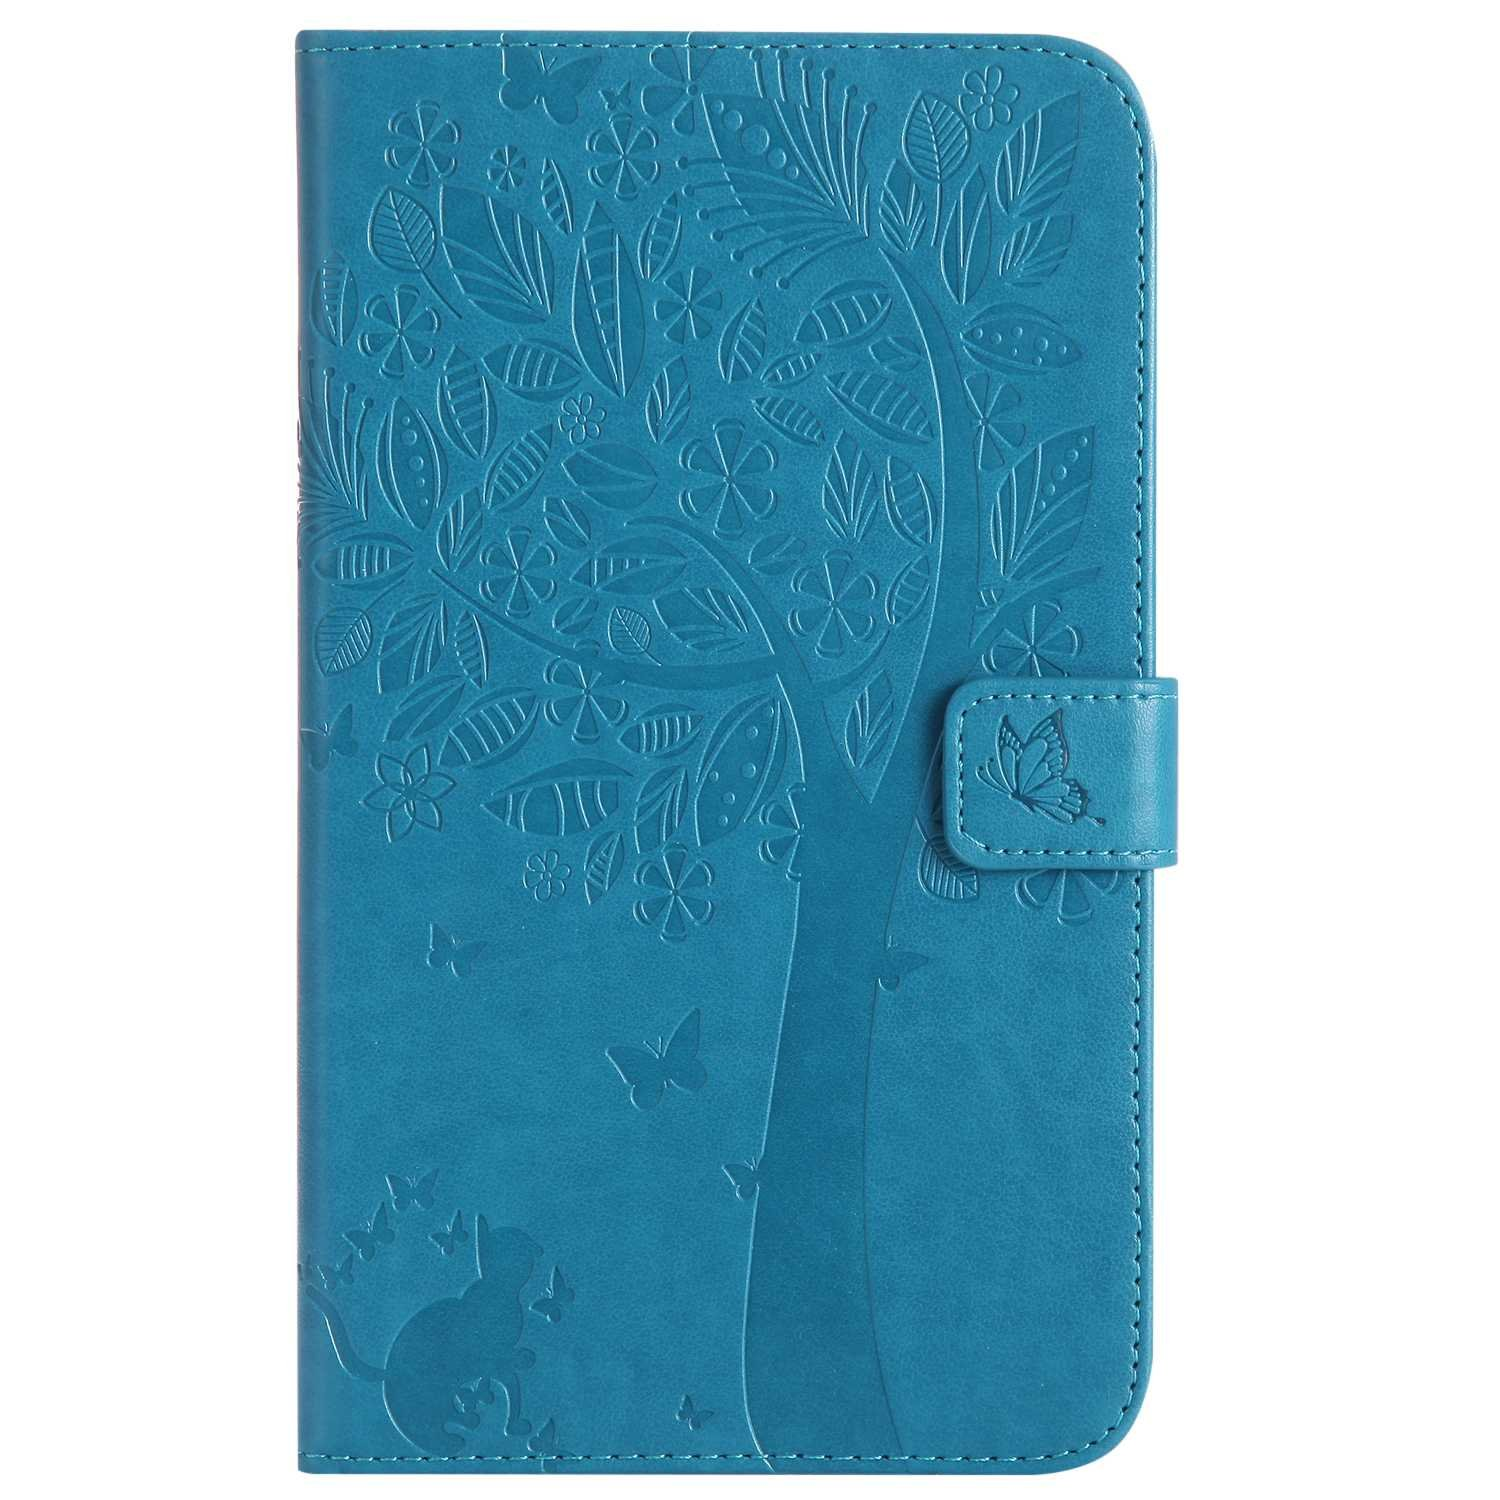 Bear Village Galaxy Tab a 7.0 Inch Case, Leather Magnetic Case, Fullbody Protective Cover with Stand Function for Samsung Galaxy Tab a 7.0 Inch, Blue by Bear Village